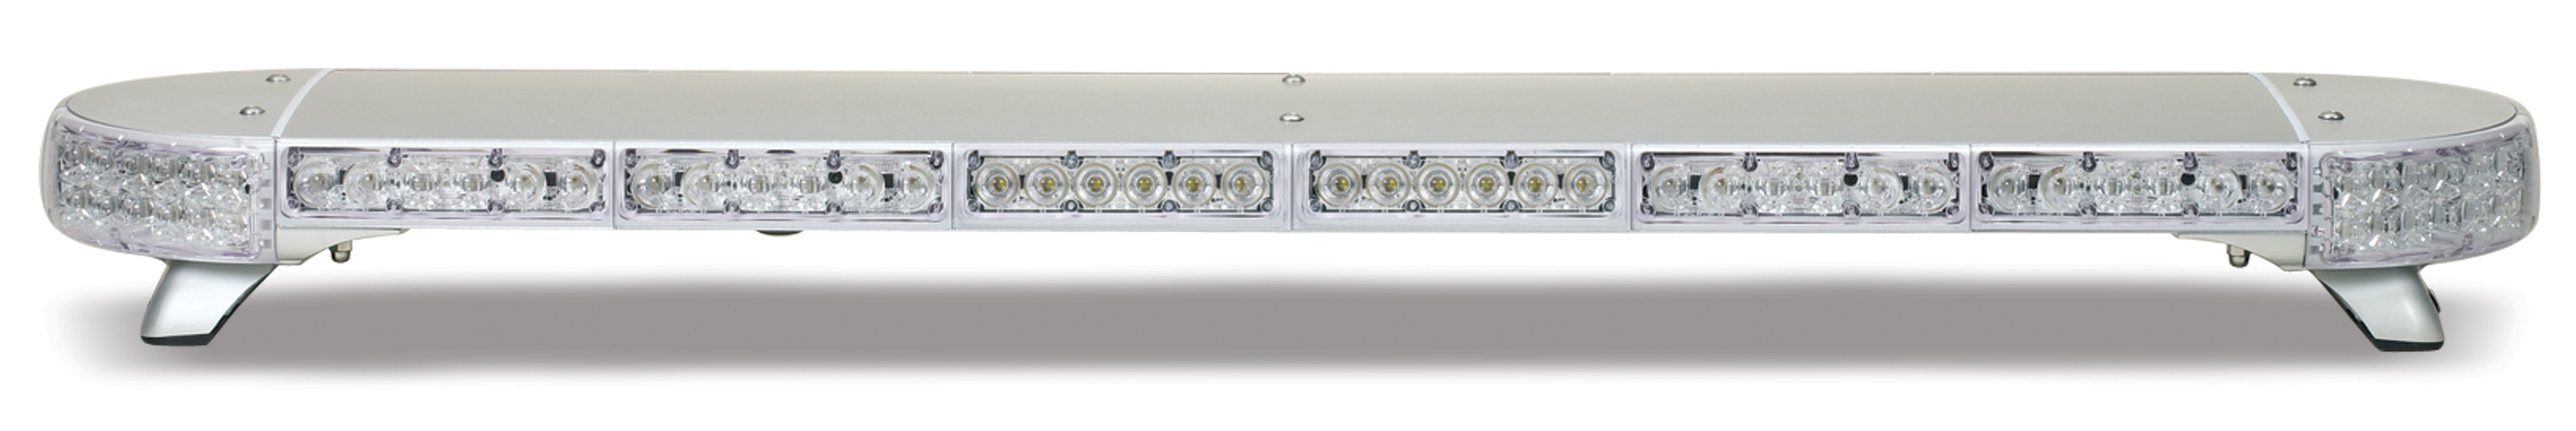 Pinnacle Exterior Full Size Lightbar Product Image